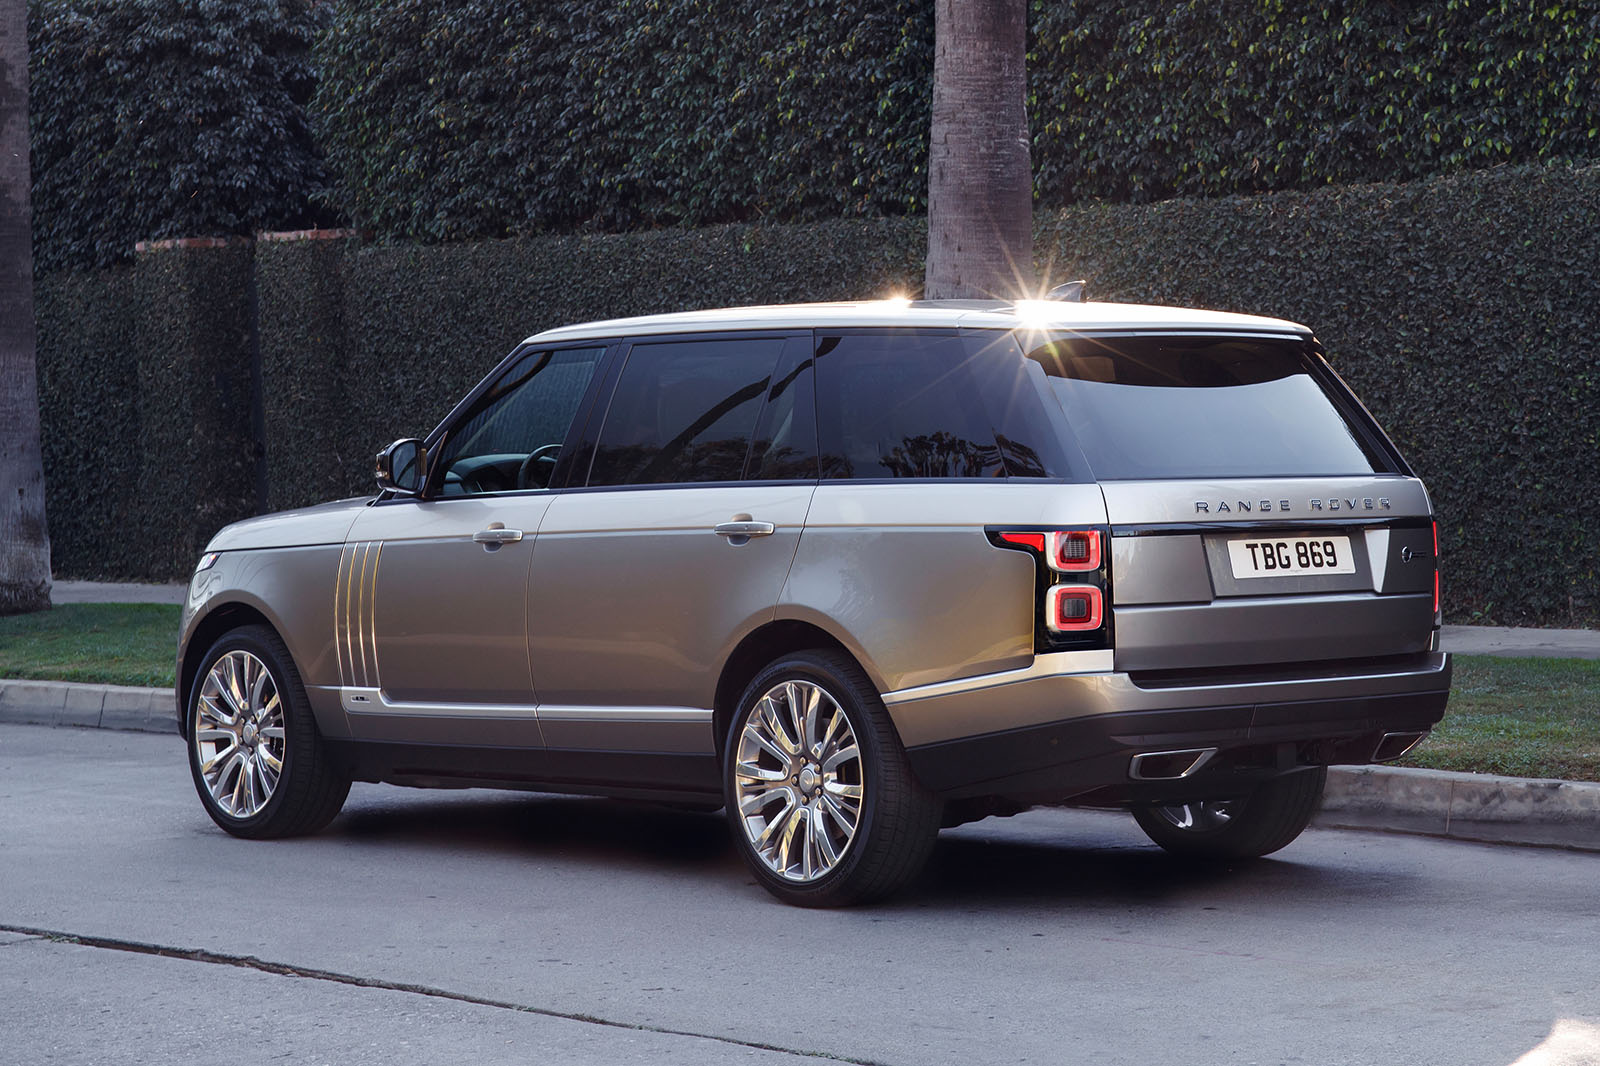 2018 Diesel Suv >> Extended Range Rover SVAutobiography revealed | Autocar